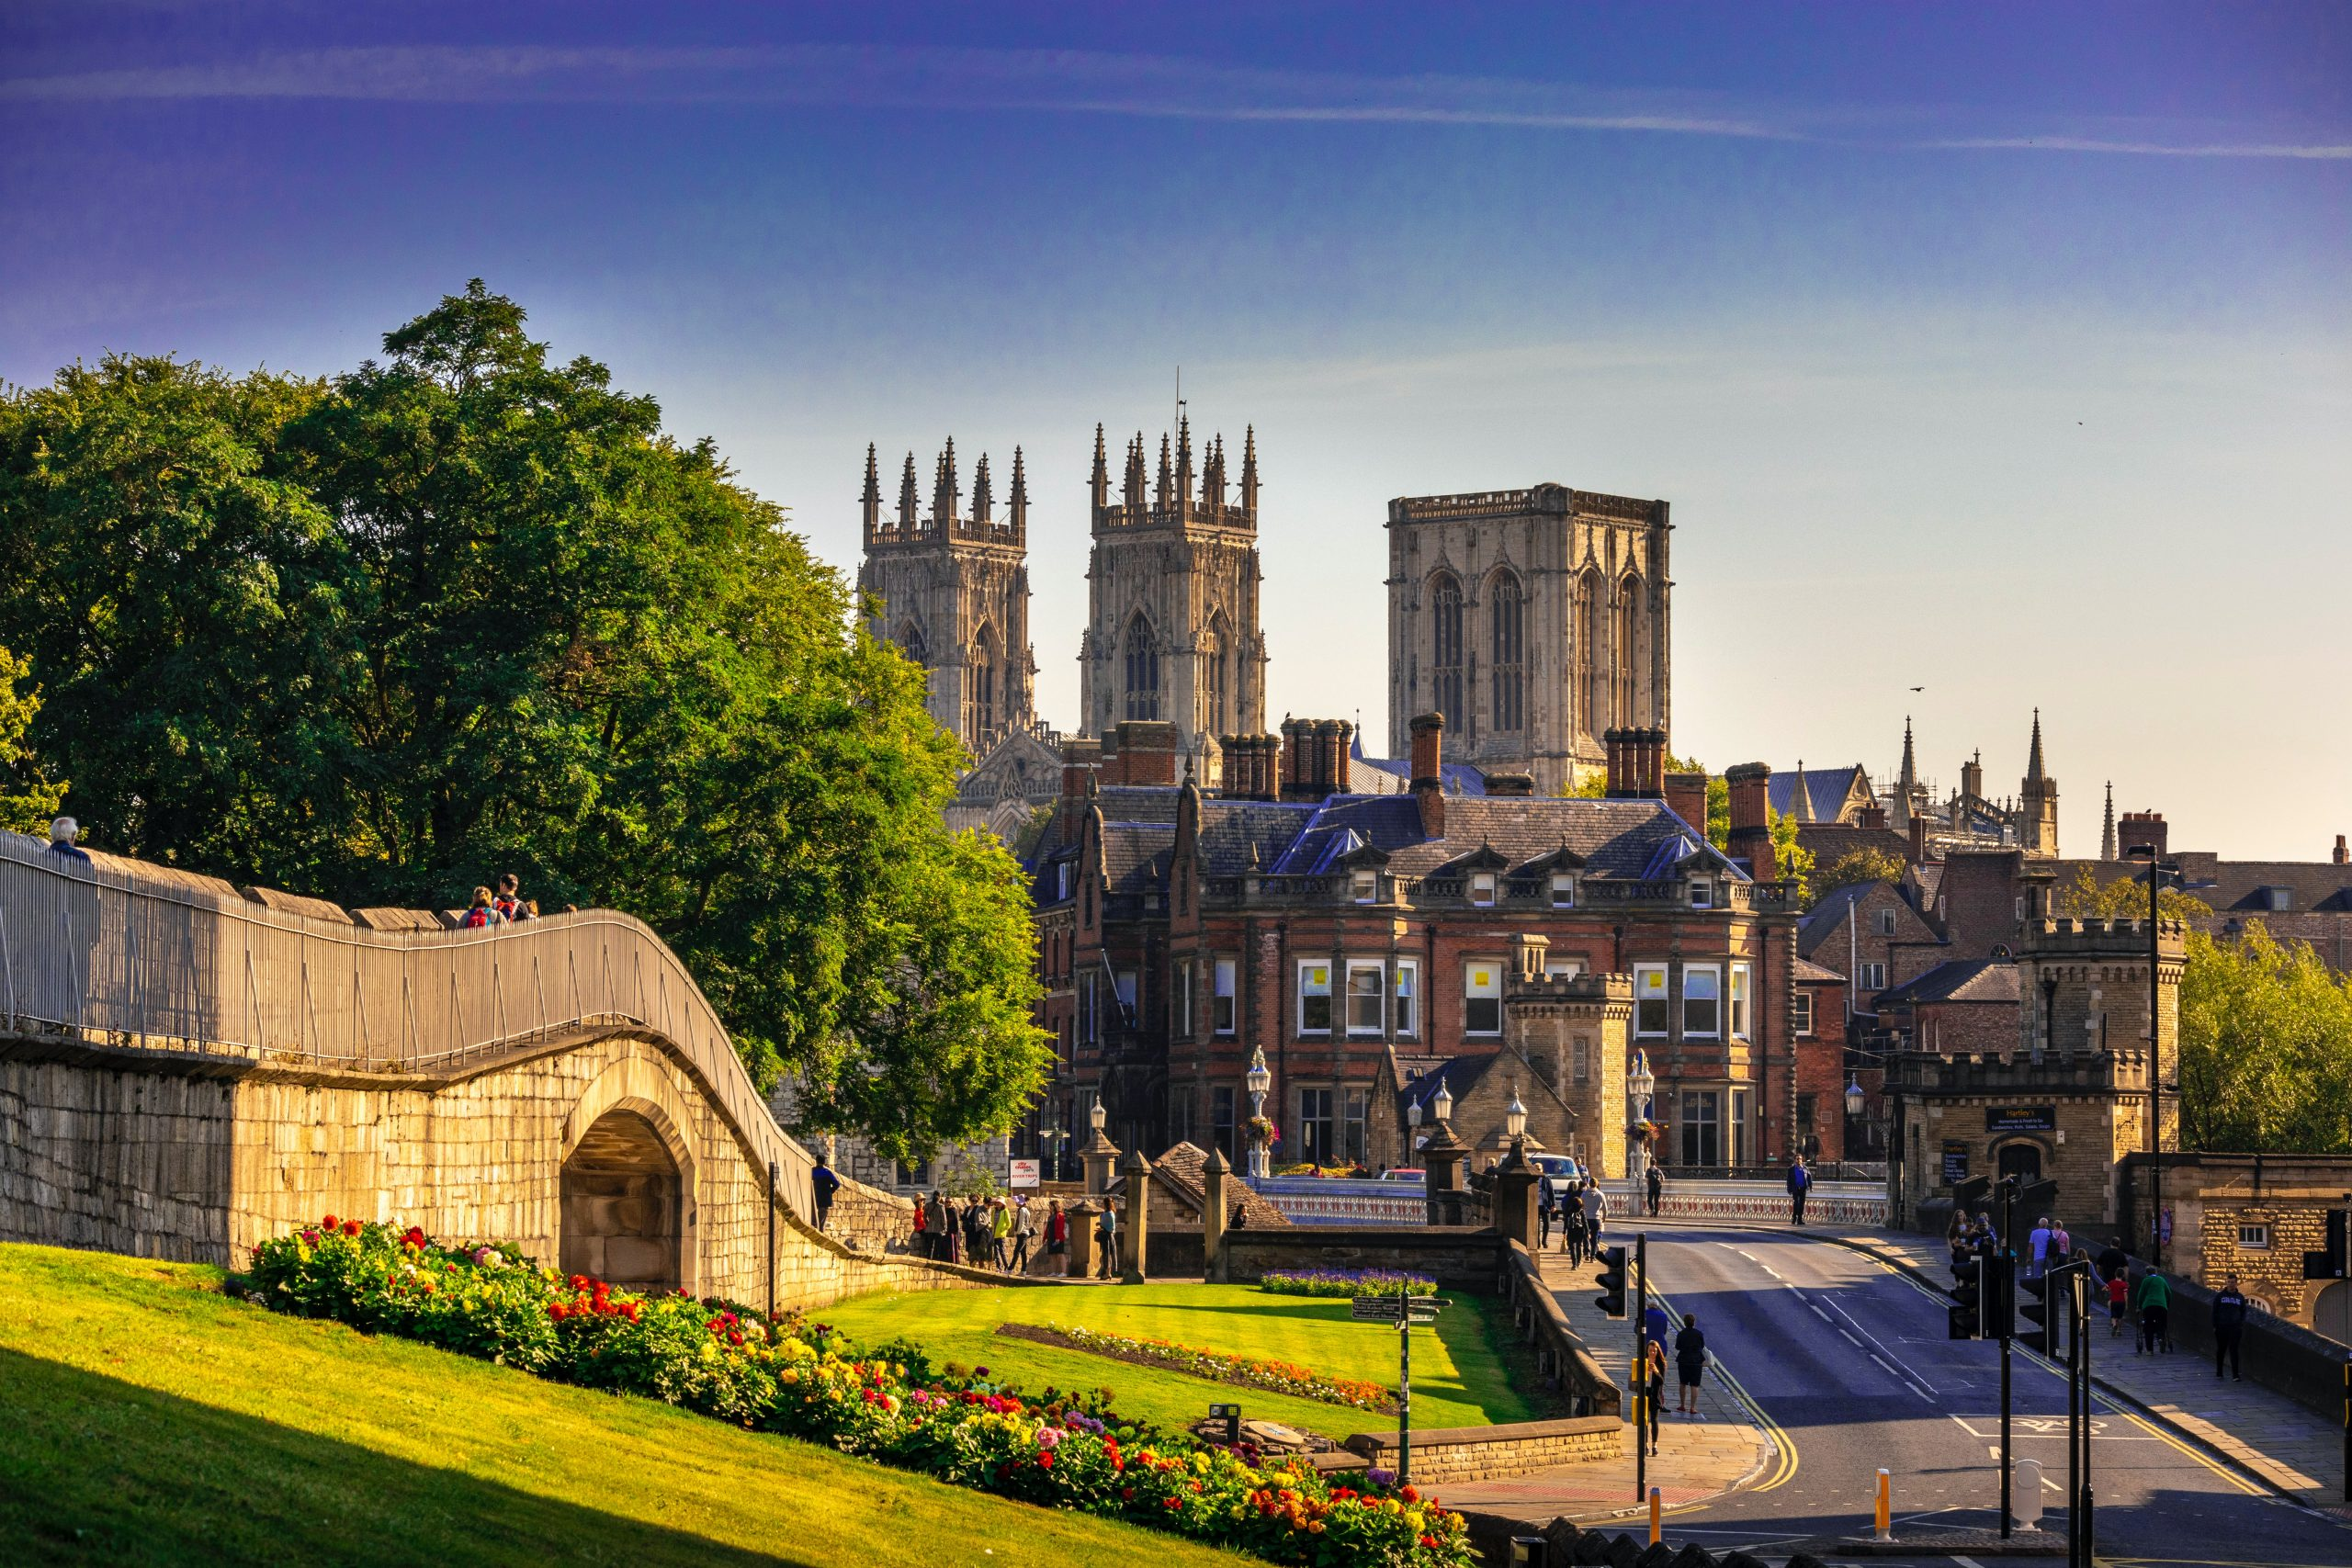 The city skyline of York with the cathedral in the background.